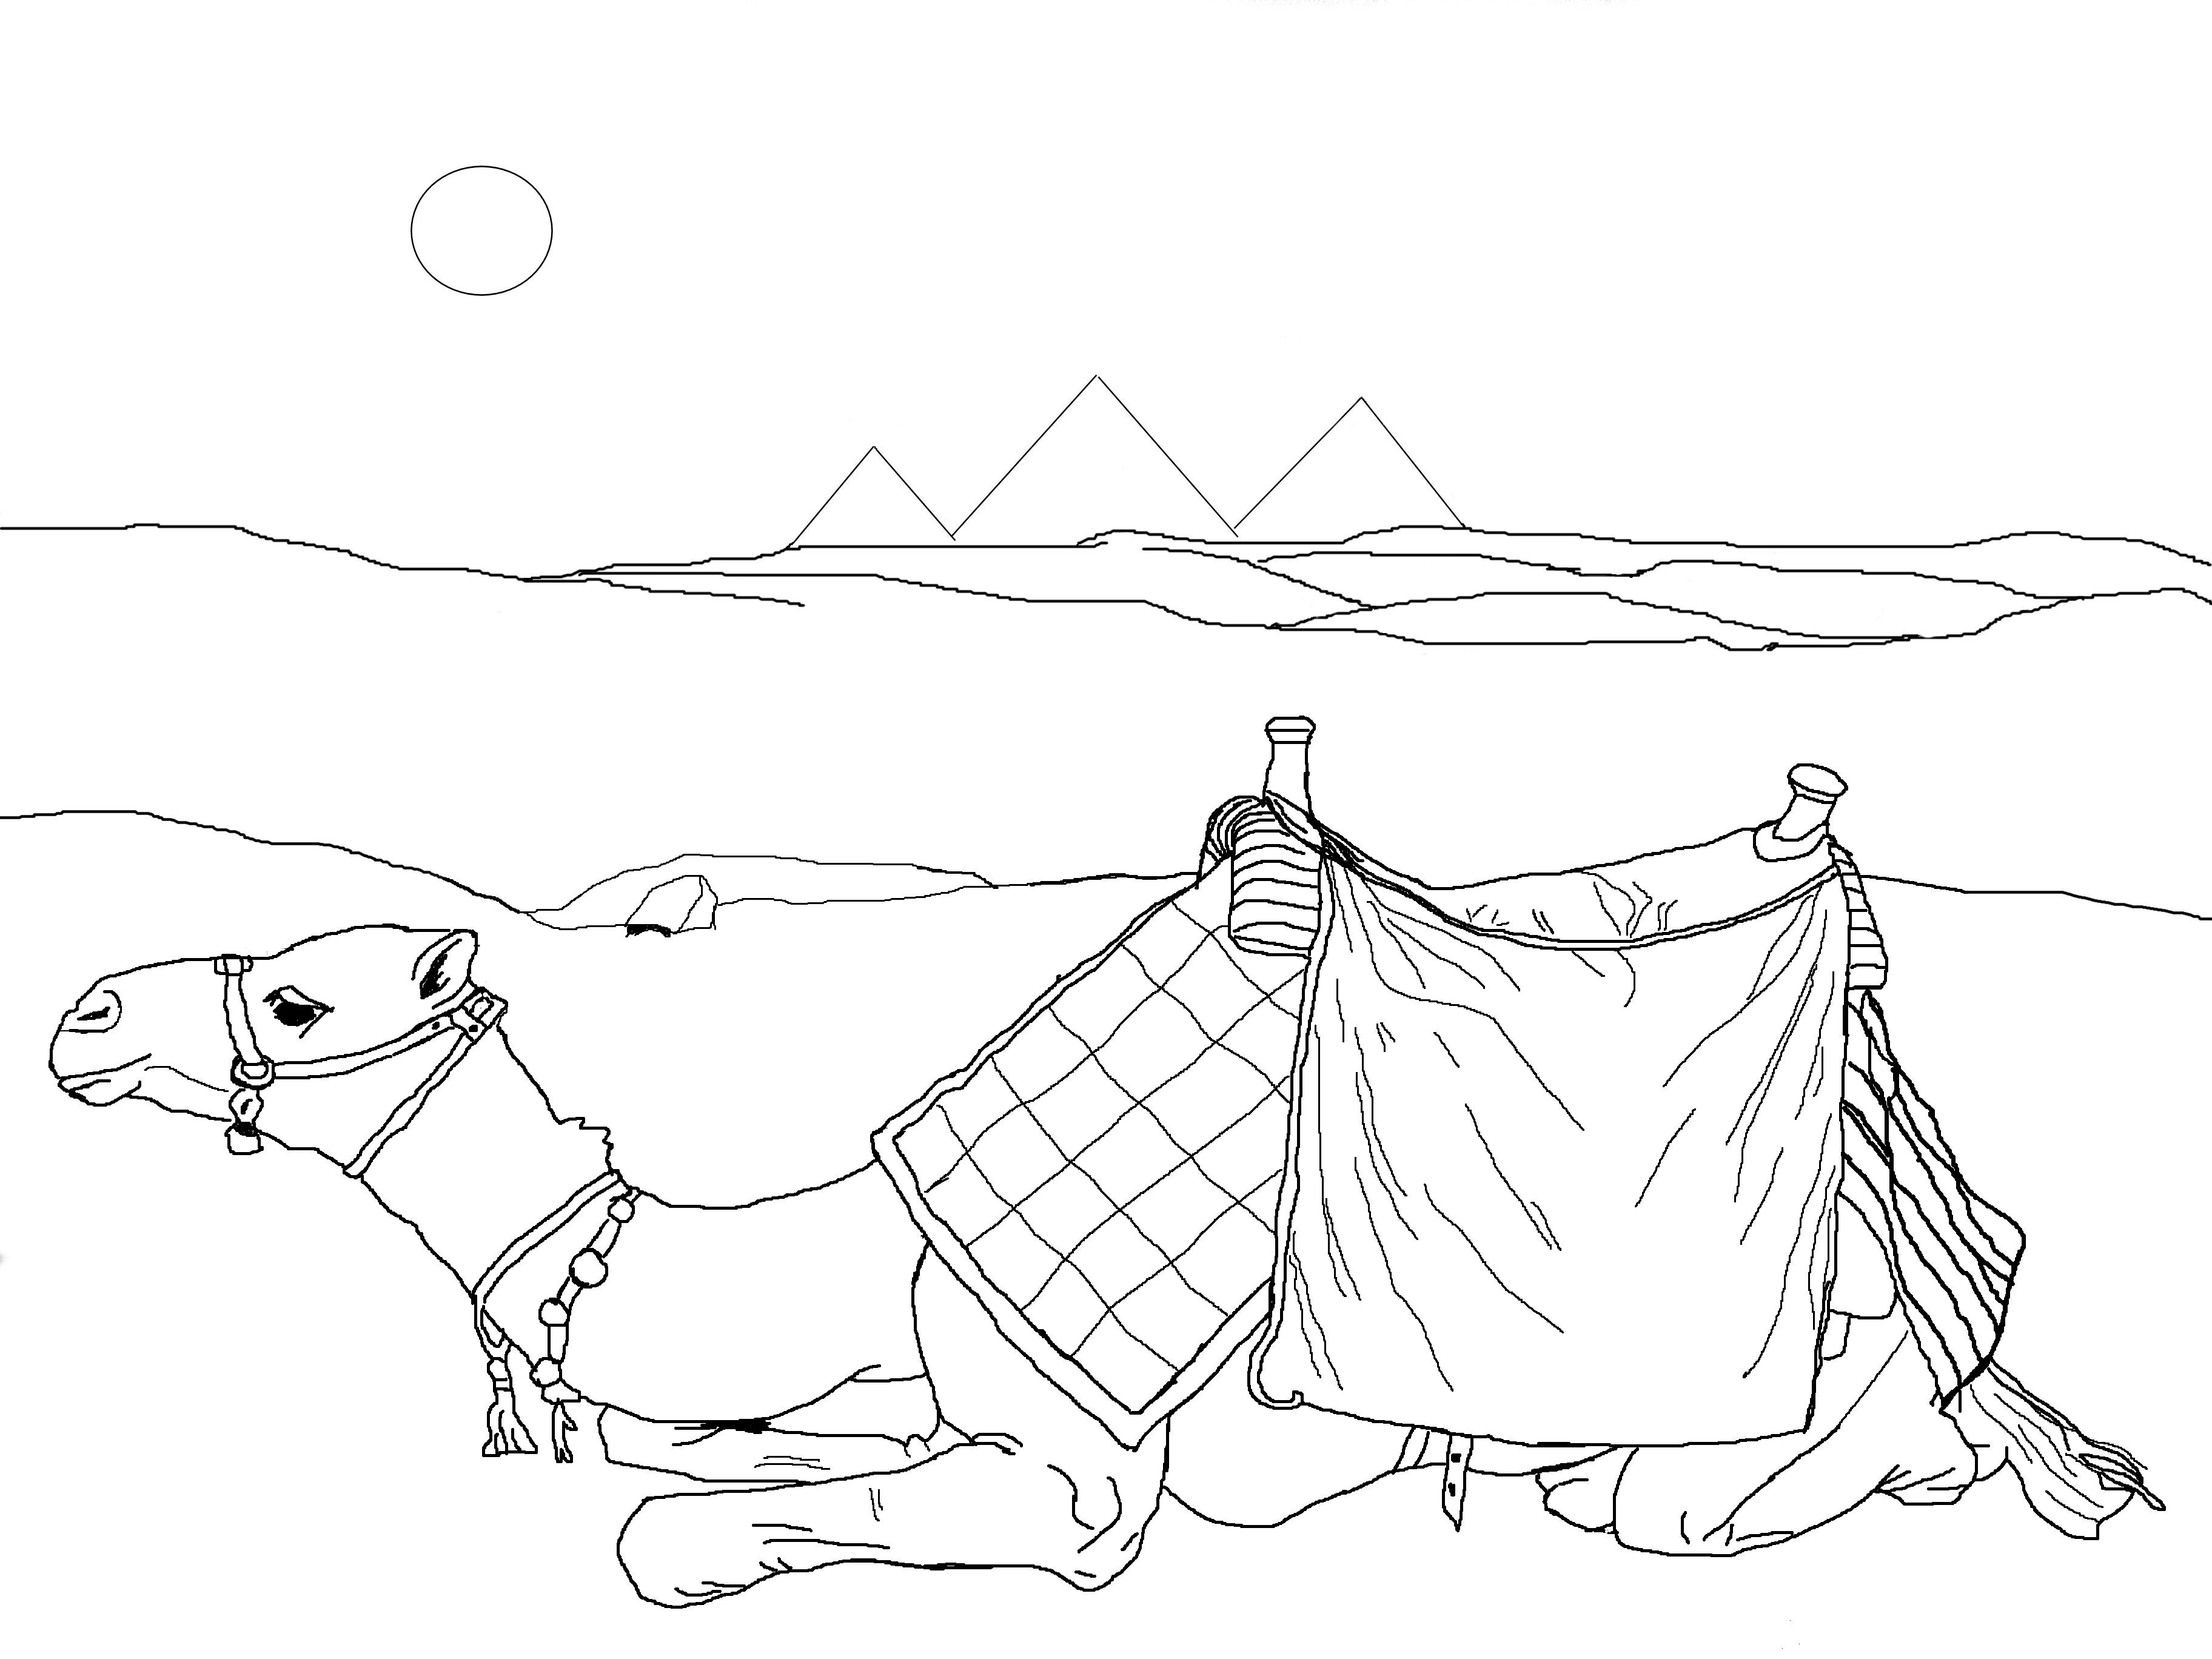 Drawn camels coloring book Pages Pages Pages Coloring Coloring